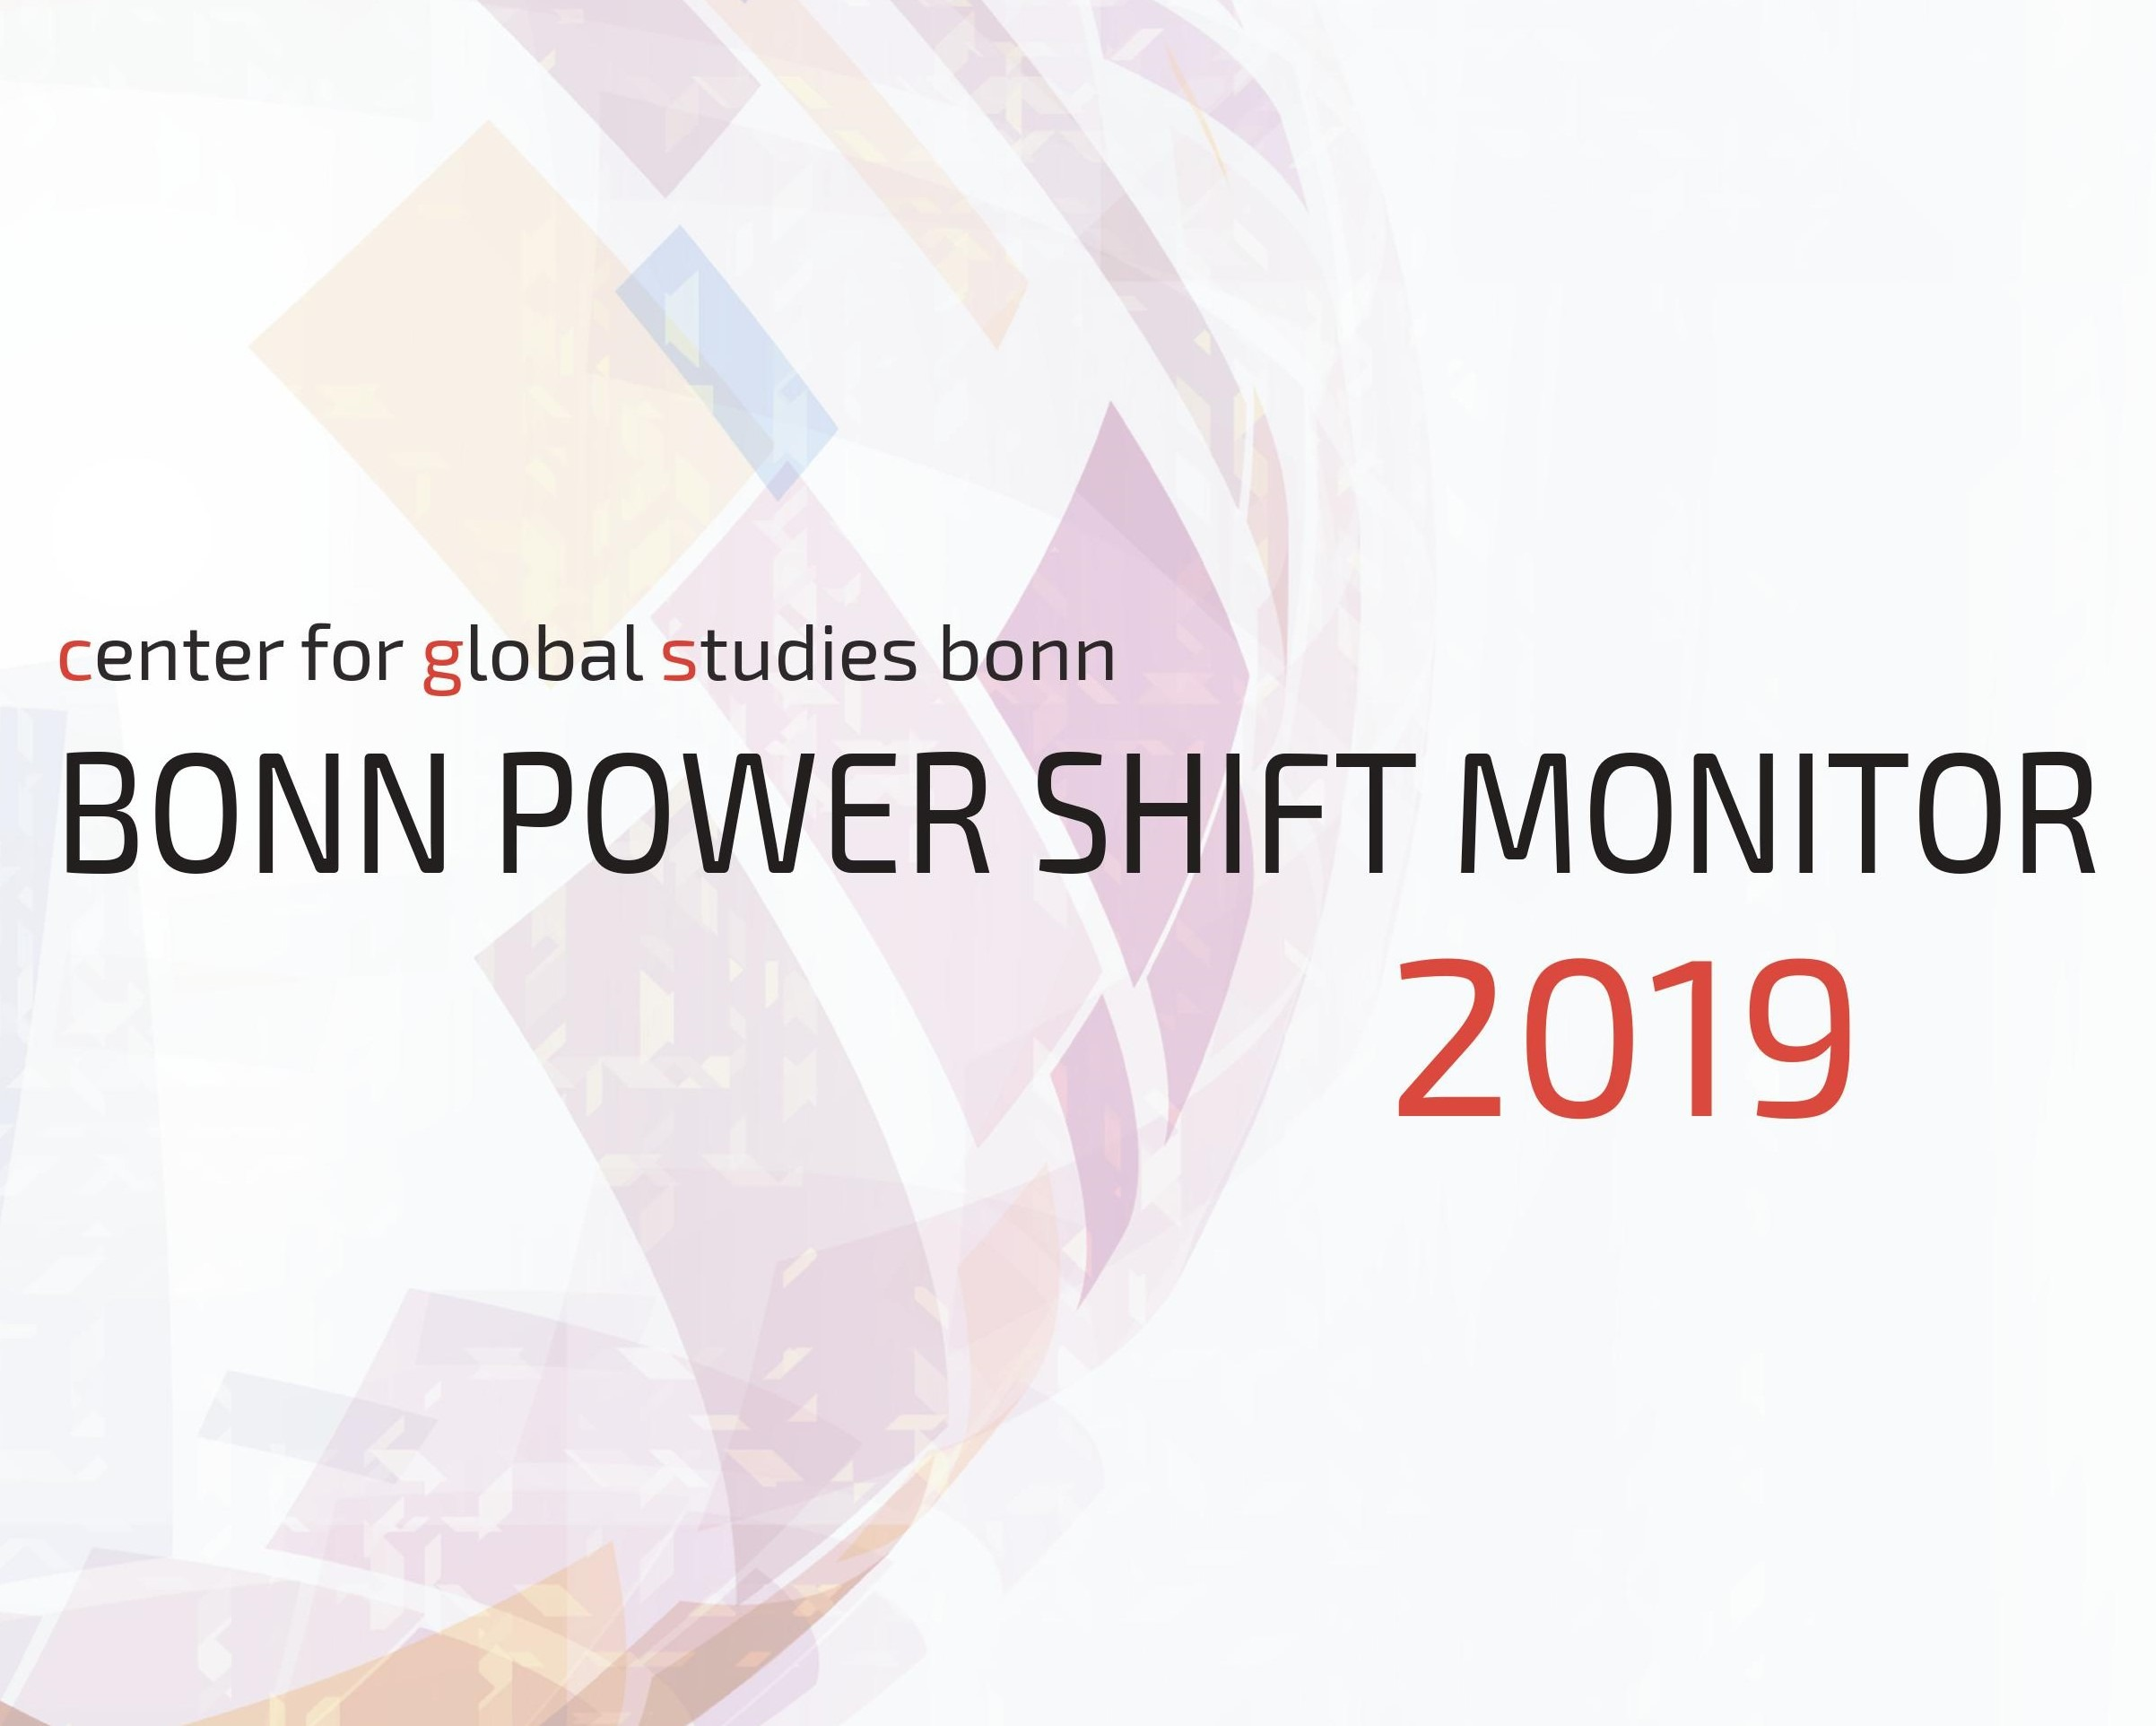 Bonn Power Shift Monitor 2019